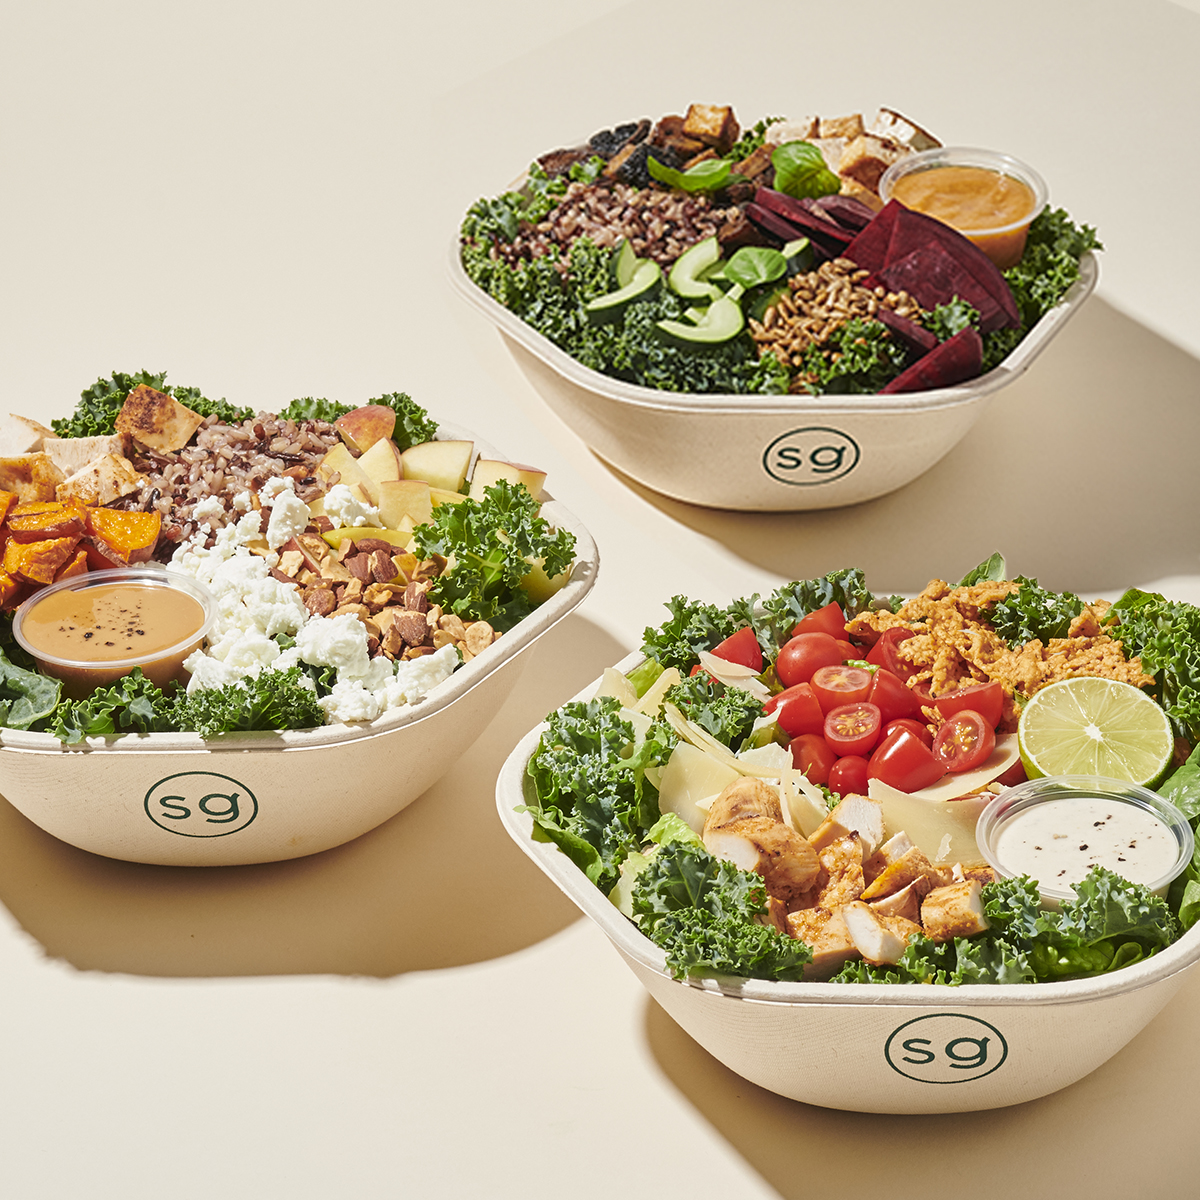 Three bowls of salad from Sweetgreen